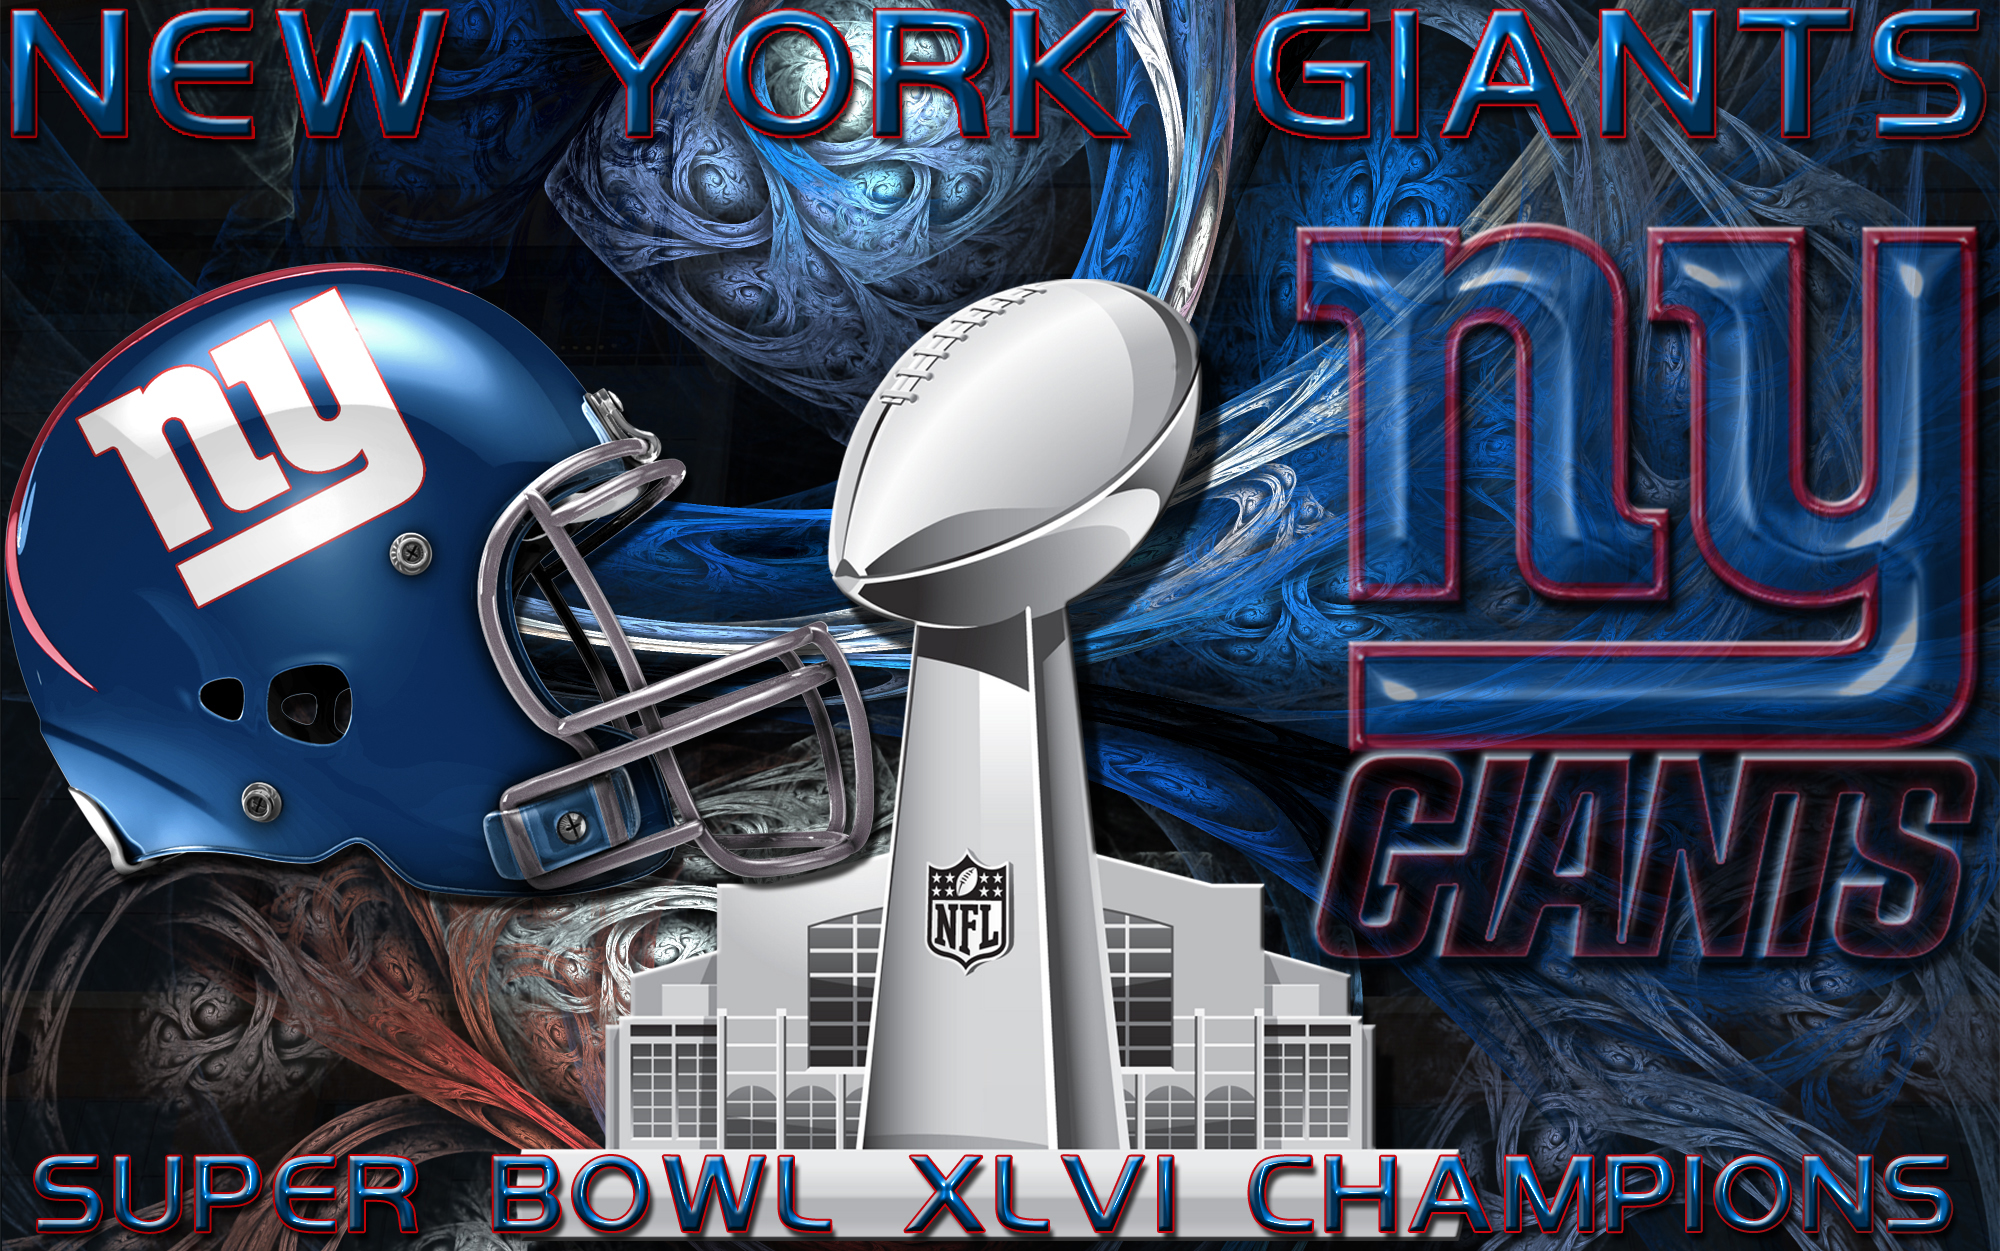 New York Giants Super Bowl XLVI Champions Wallpaper Alternate Version 2000x1251